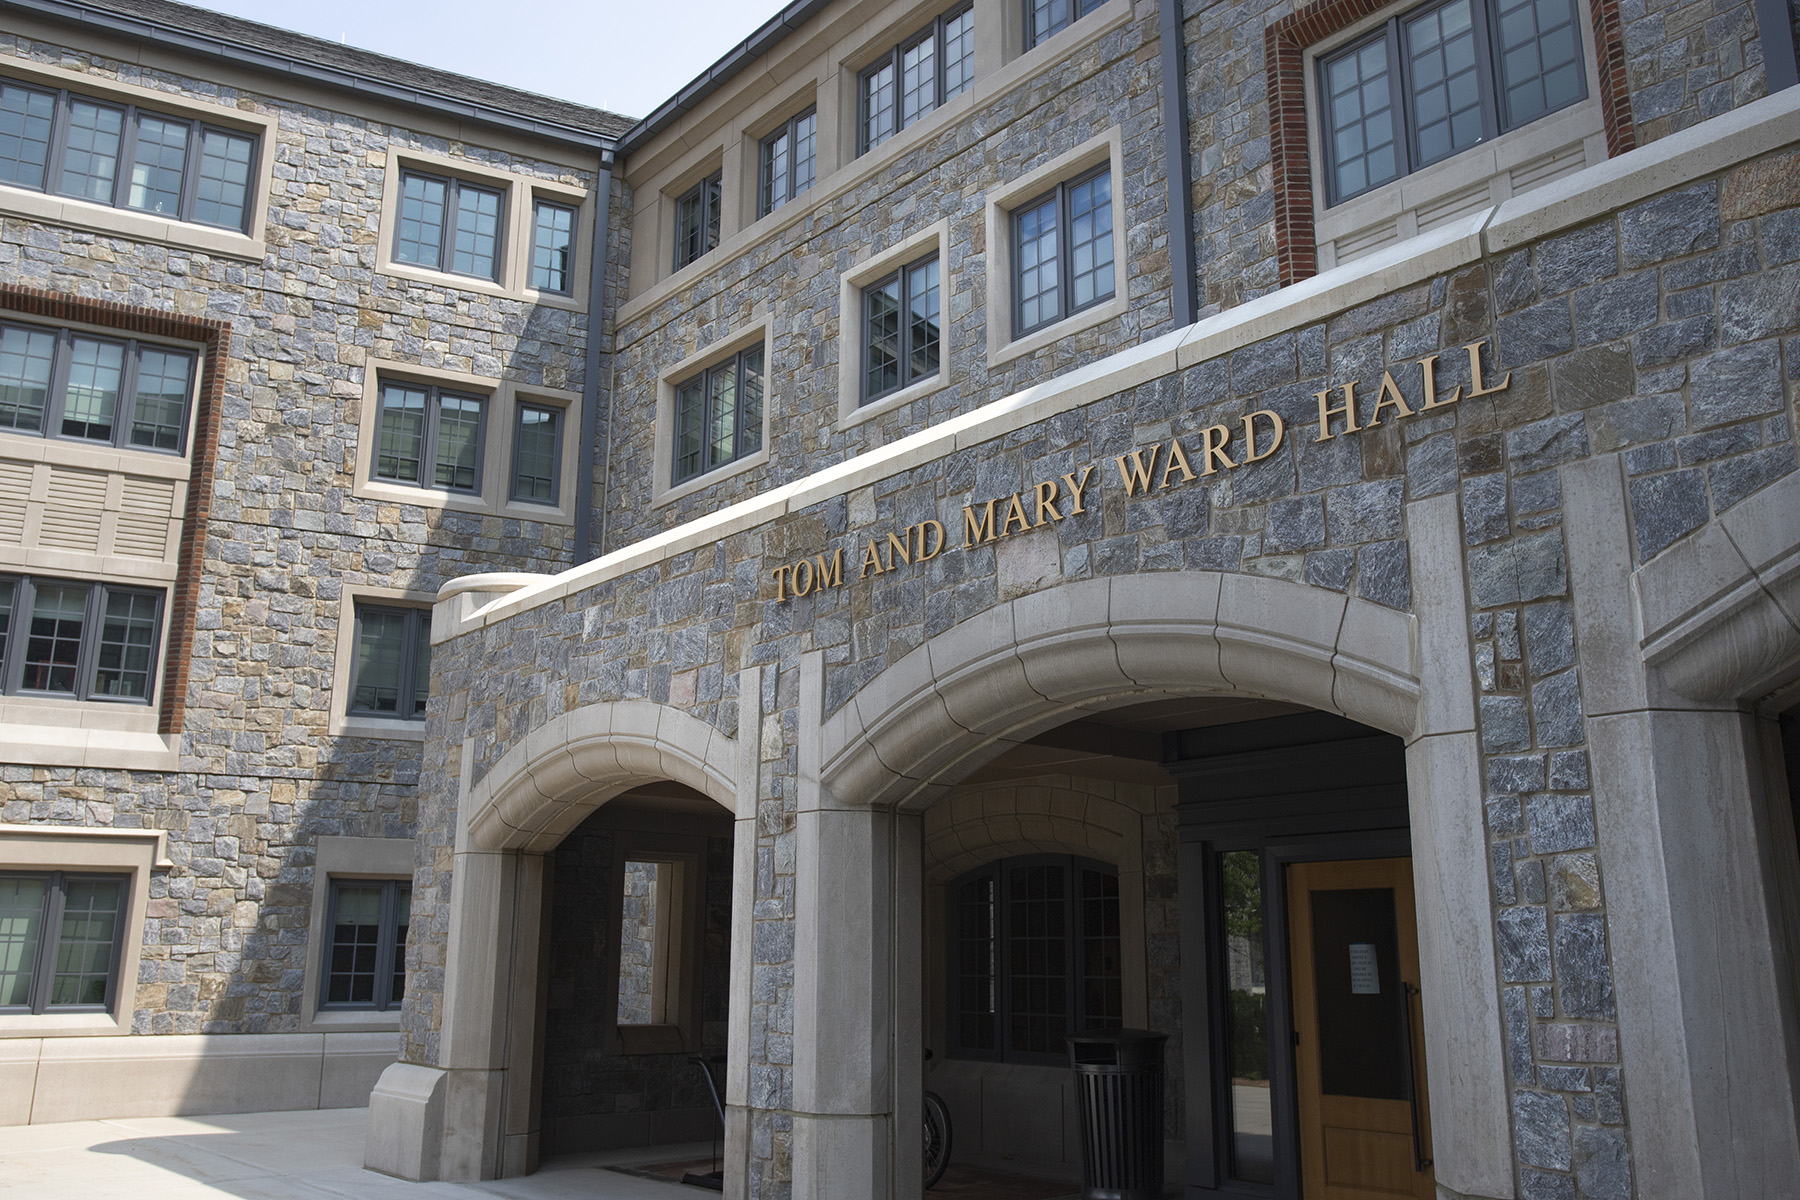 tom and mary ward hall